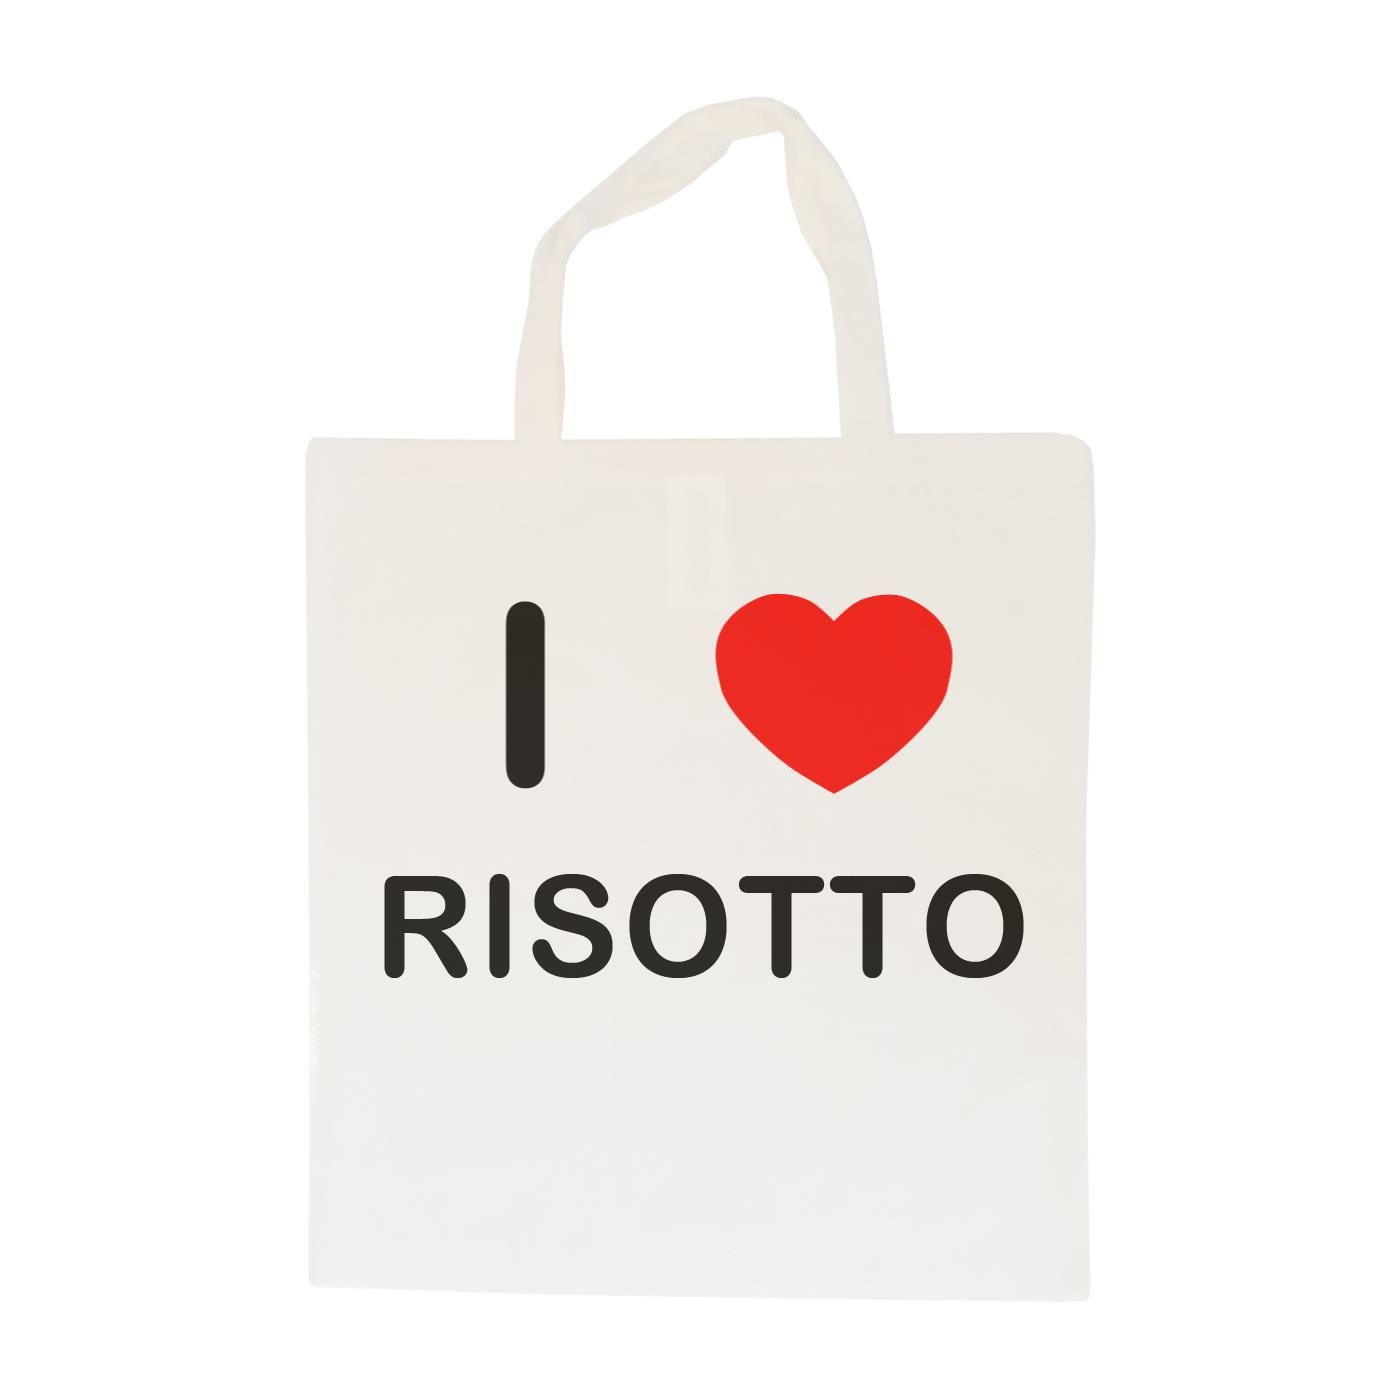 I Love Risotto - Cotton Bag | Size choice Tote, Shopper or Sling